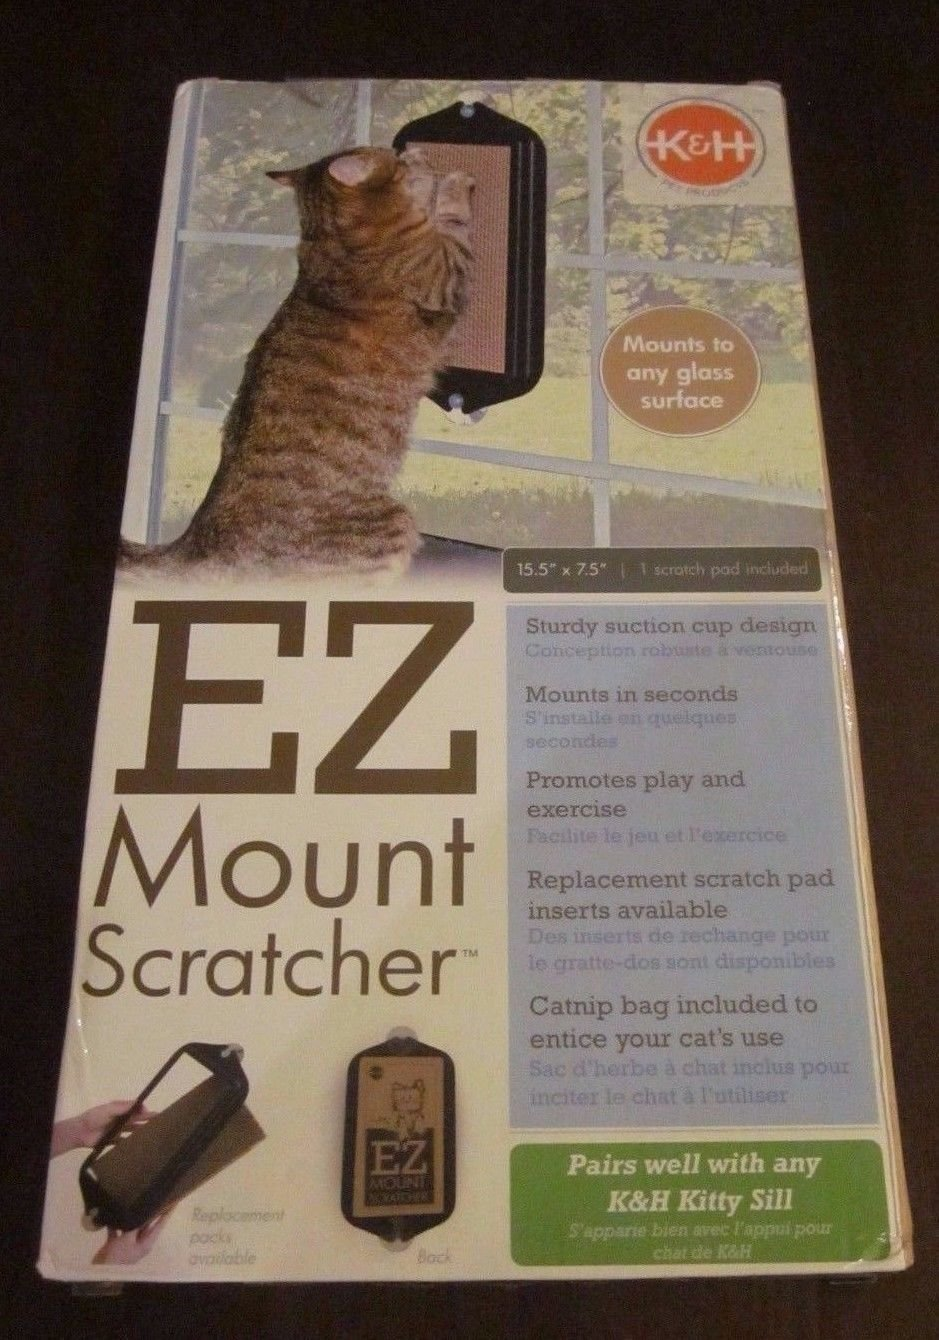 "K&h Pet Products EZ Mount Window Scratcher Black 5"" x 10"", Brown (RPAL-A10)"